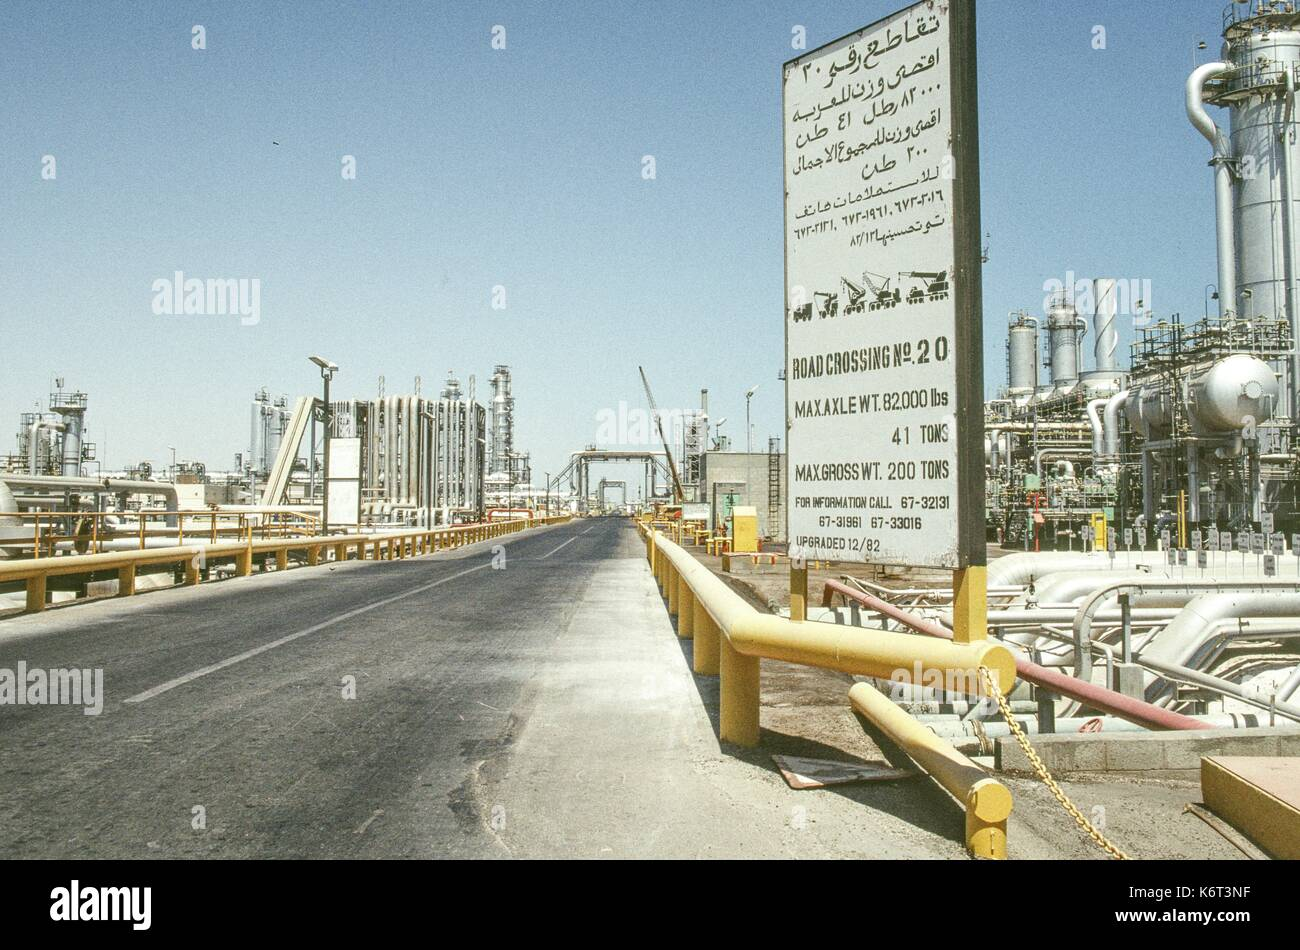 Saudi Arabia Oil Rich Gulf Arab Country Stock Photos & Saudi Arabia